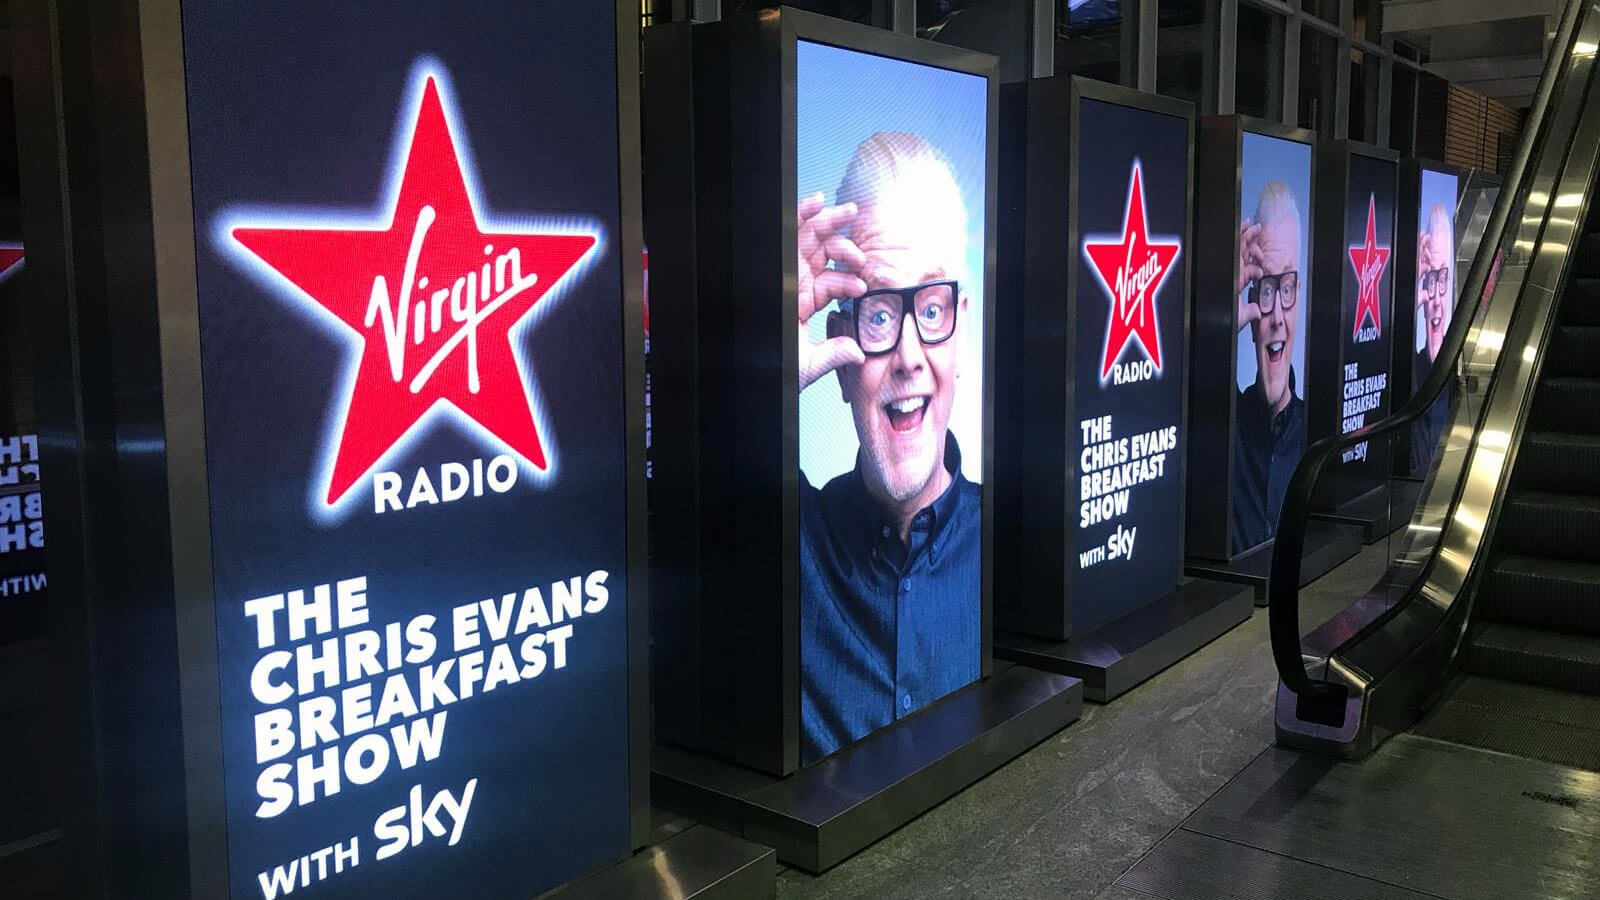 Video production company in London filming Chris Evans radio